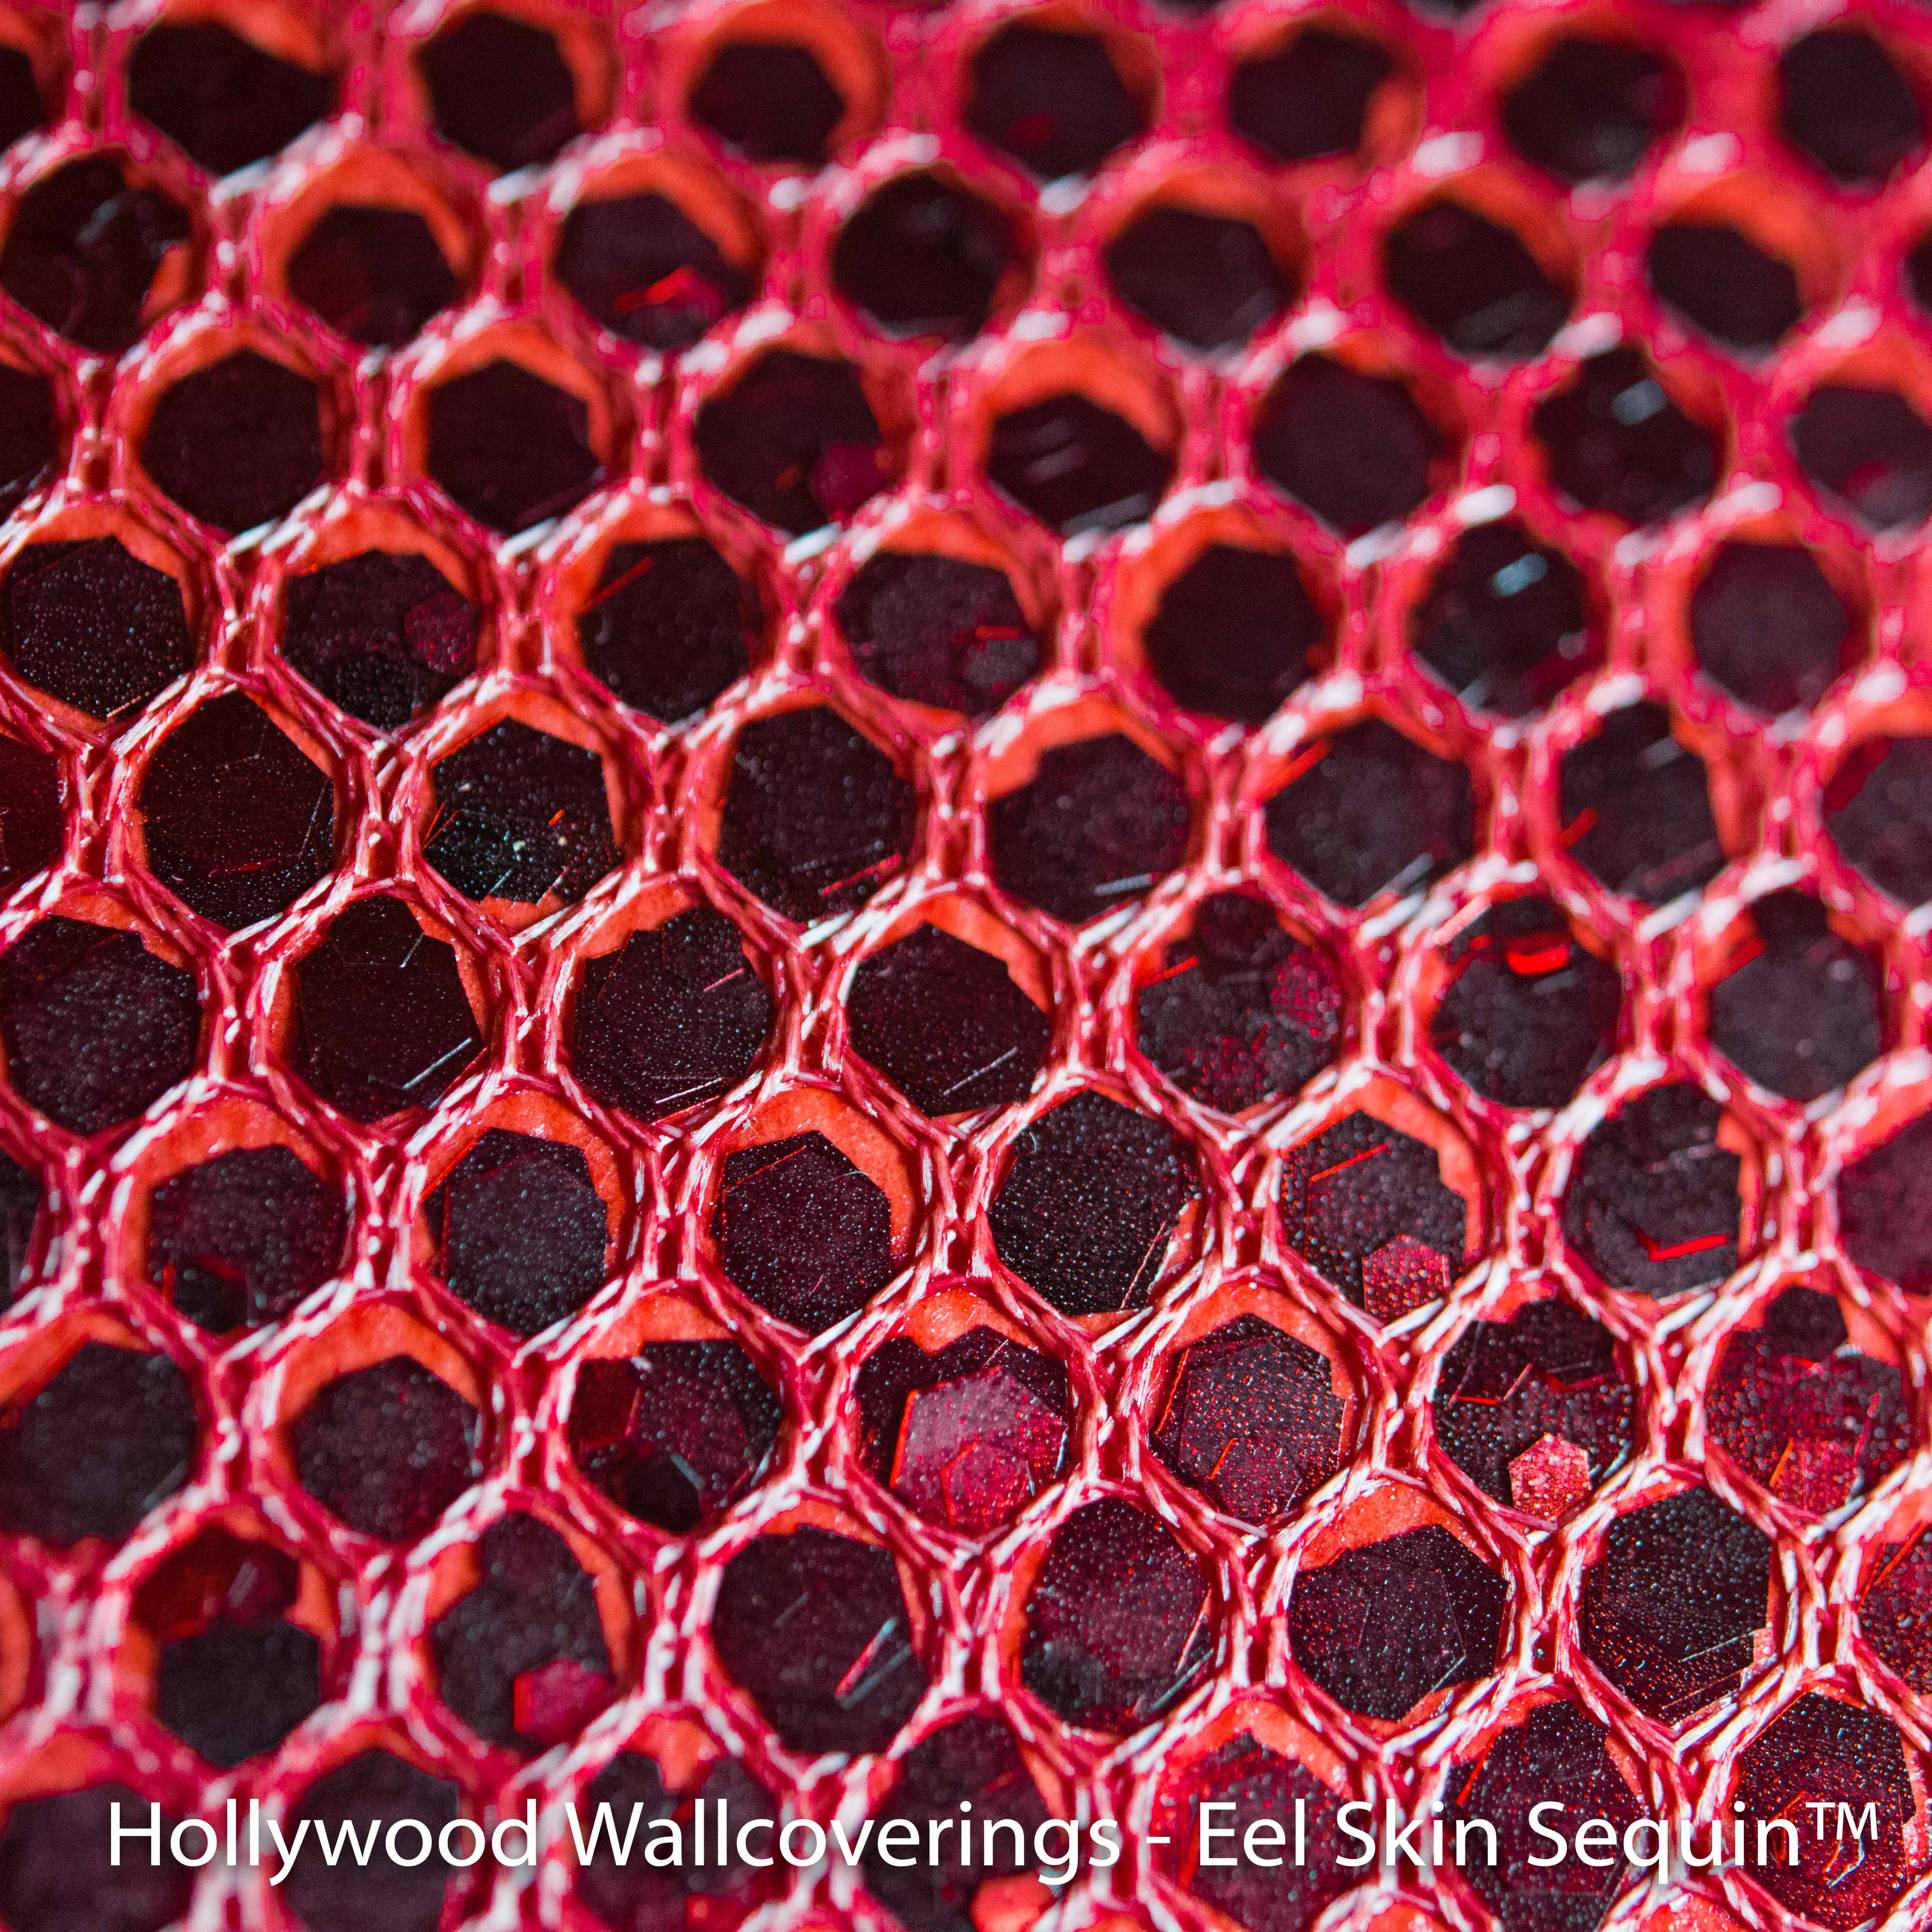 Eel-Skin-Sequin-GLM-Home-Color-Red-Shine-DesignerWallcoverings-com-Luxury-wallpaper-wp4605603